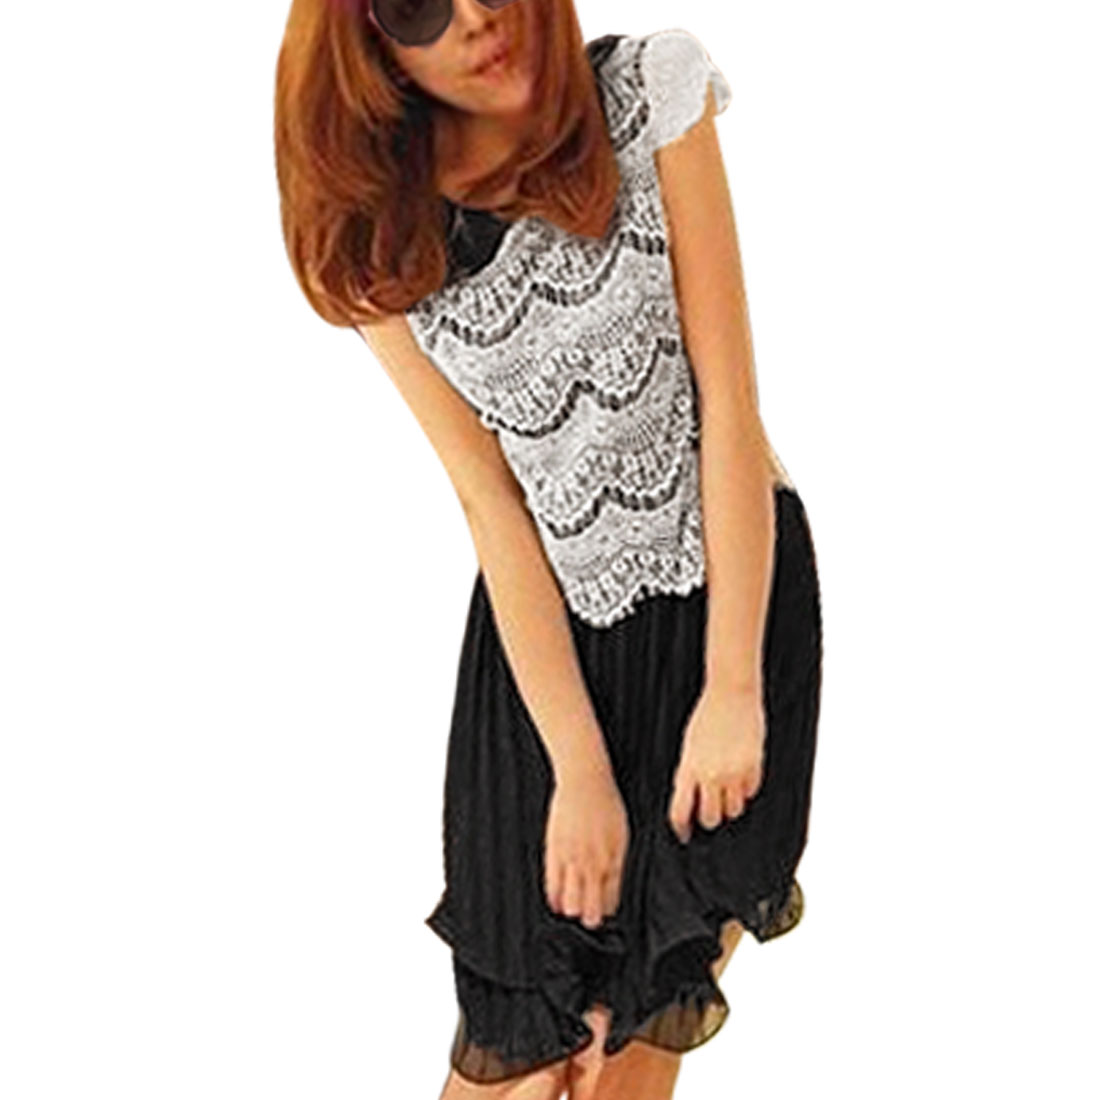 White Flowers Print Lace Ovrelay Chiffon Accordion Dress Black XS for Woman